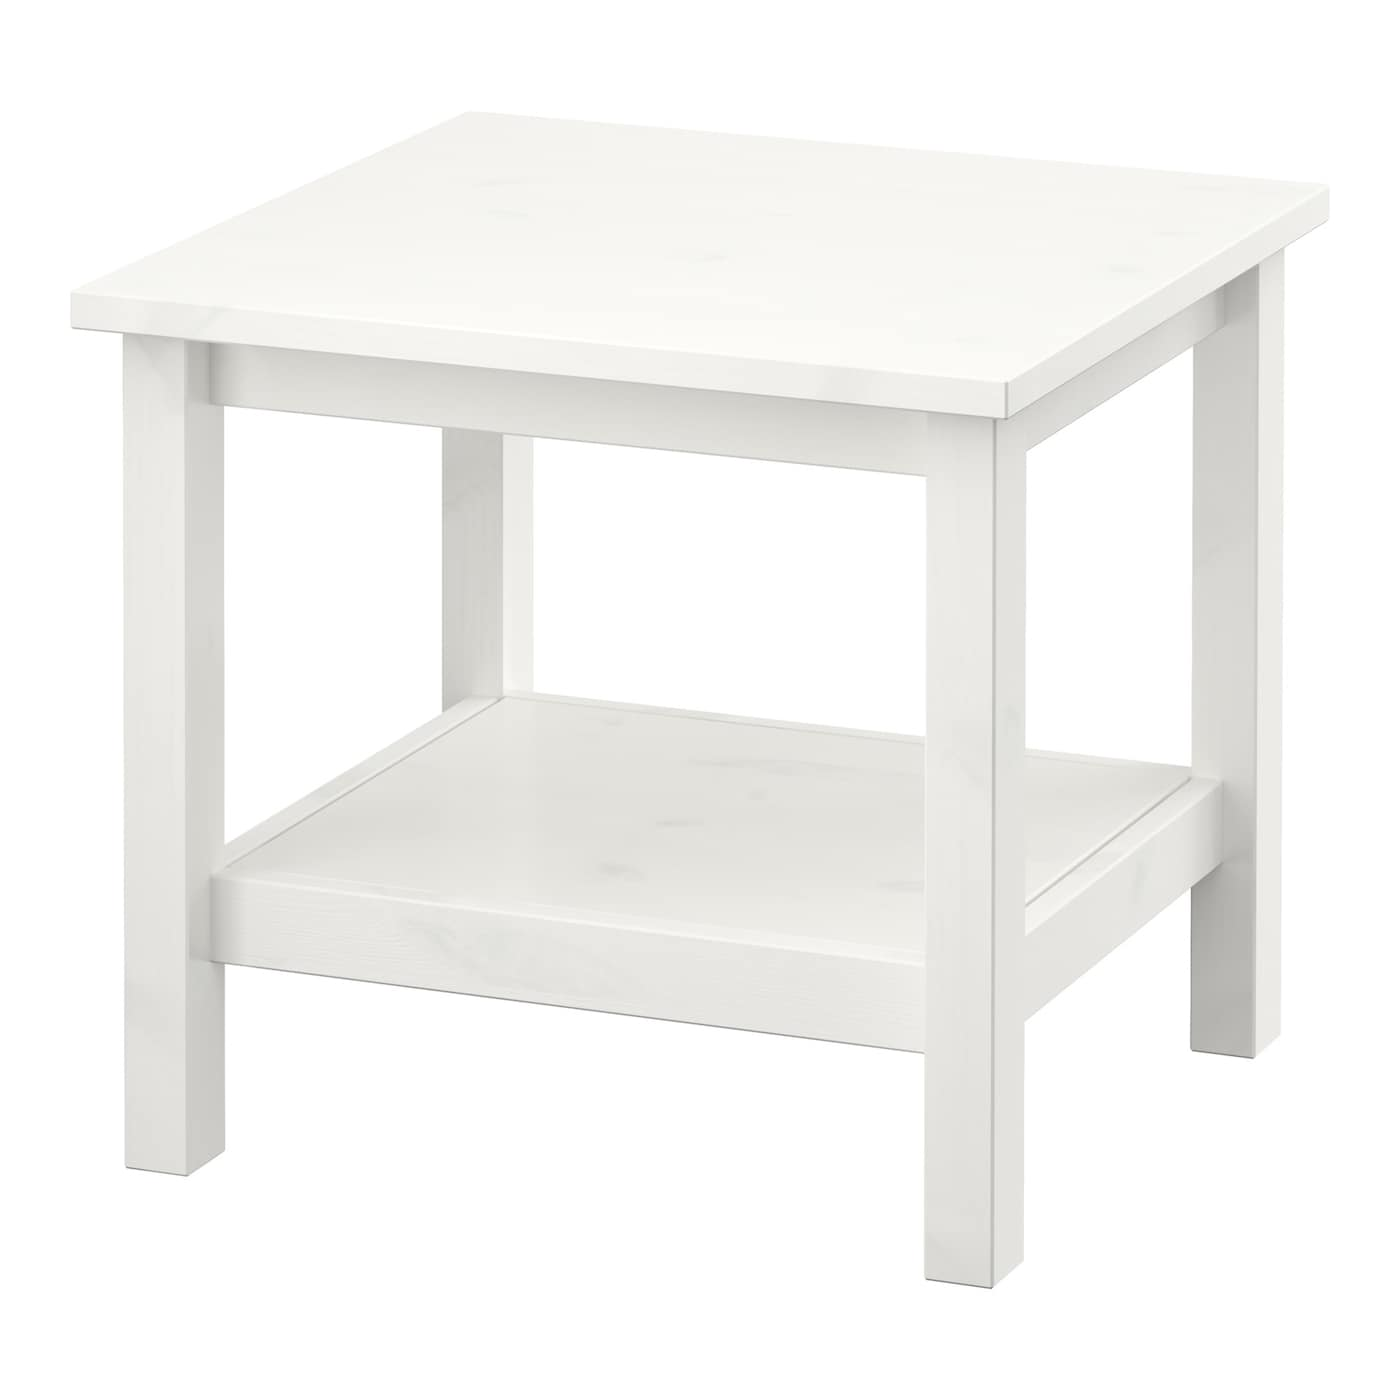 hemnes side table white stain 55x55 cm ikea. Black Bedroom Furniture Sets. Home Design Ideas